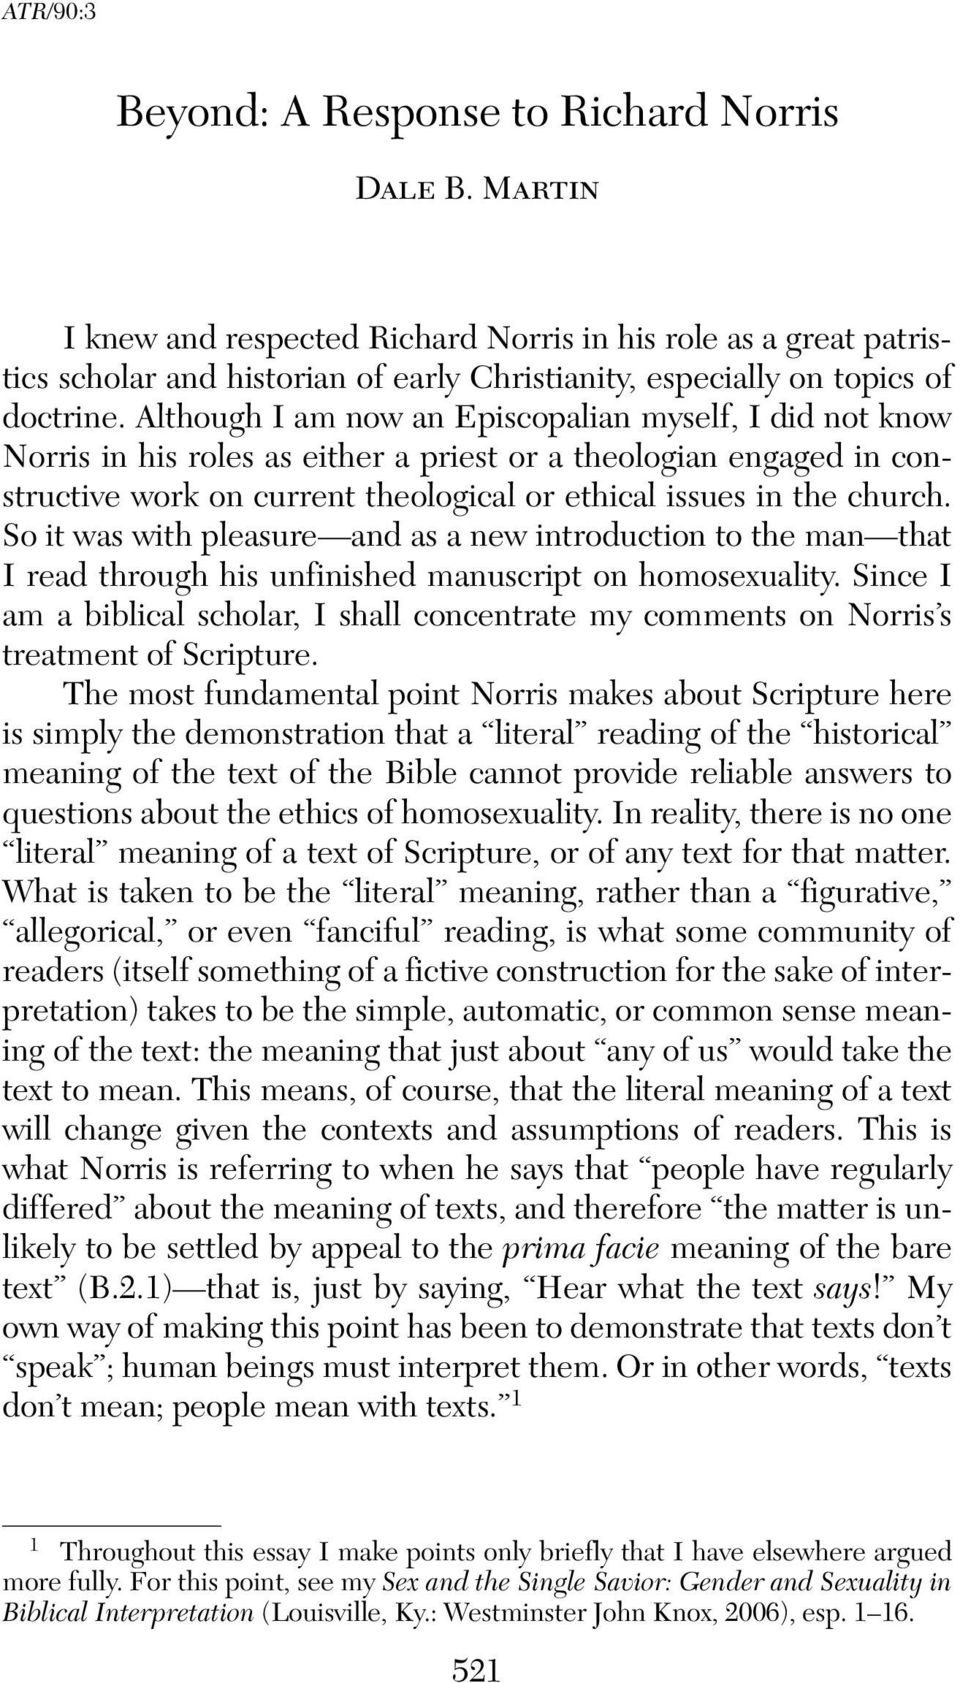 Dale martin sex and the single savior gender and sexuality in biblical interpretation